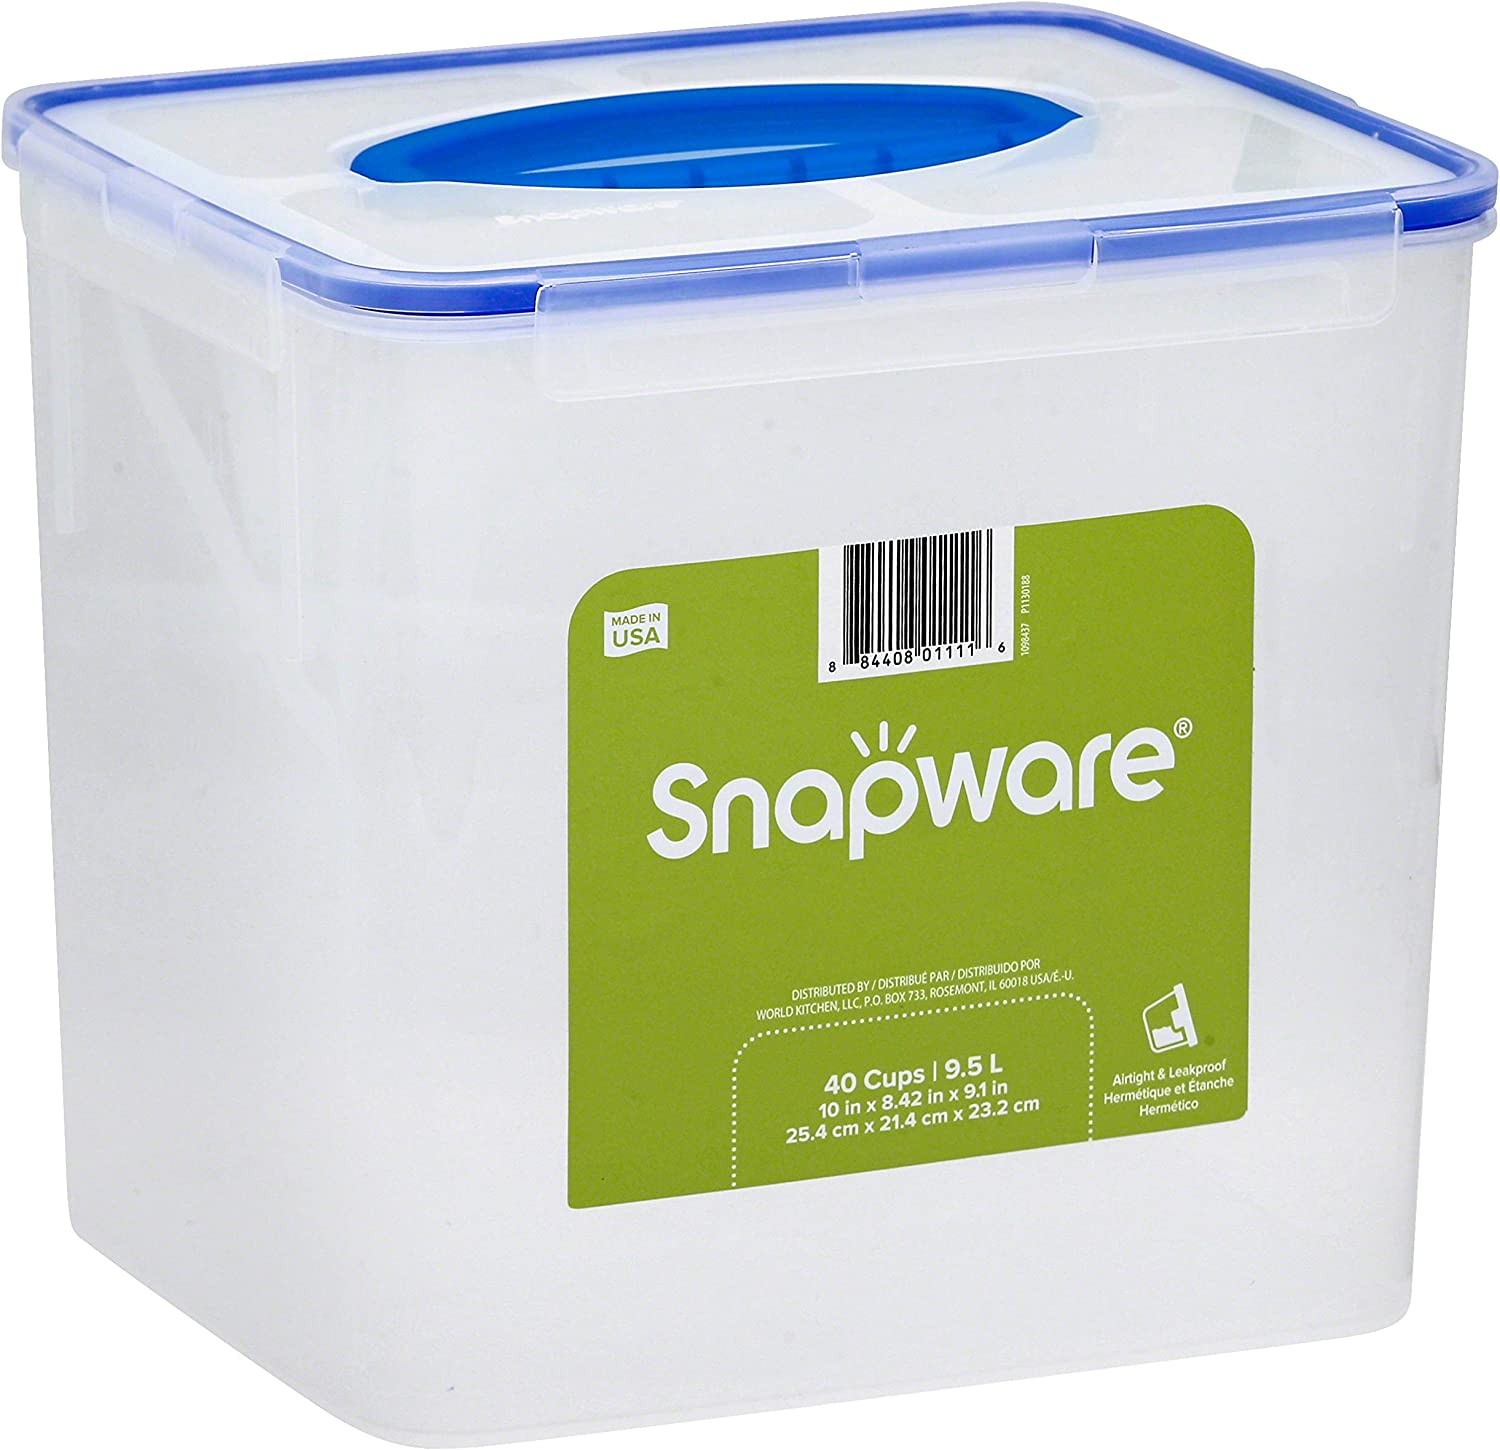 Snapware Airtight Plastic Food Storage Container (40-Cup, BPA Free, Meal Prep, Leak-Proof, Microwave, Freezer and Dishwasher Safe)